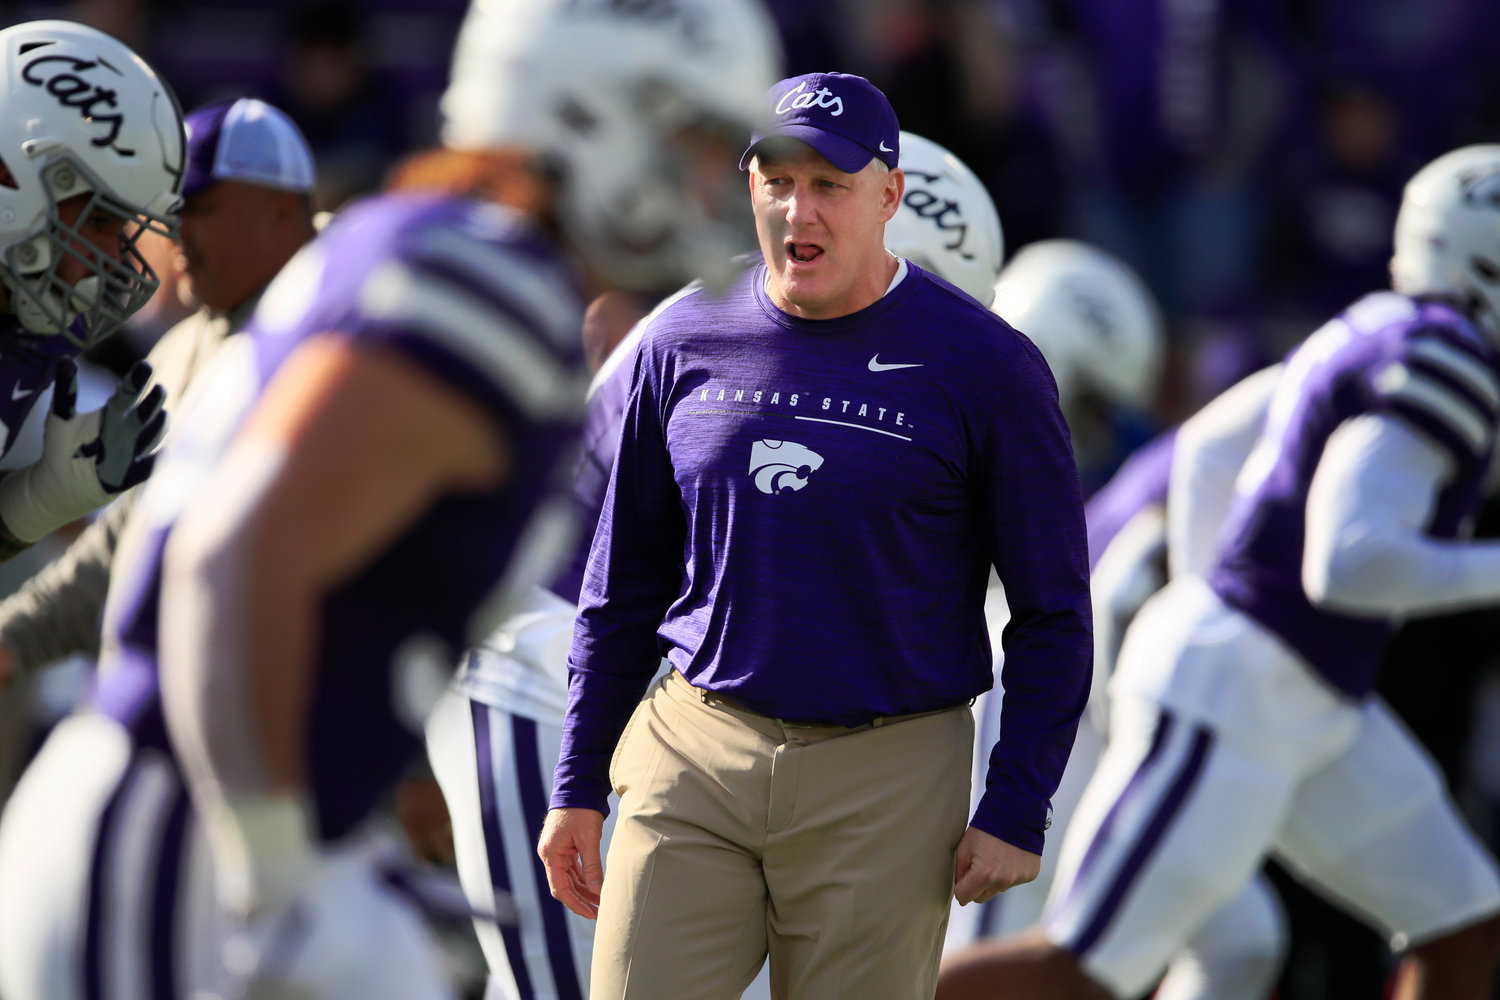 Kansas State football players plan boycott over student's George Floyd tweet